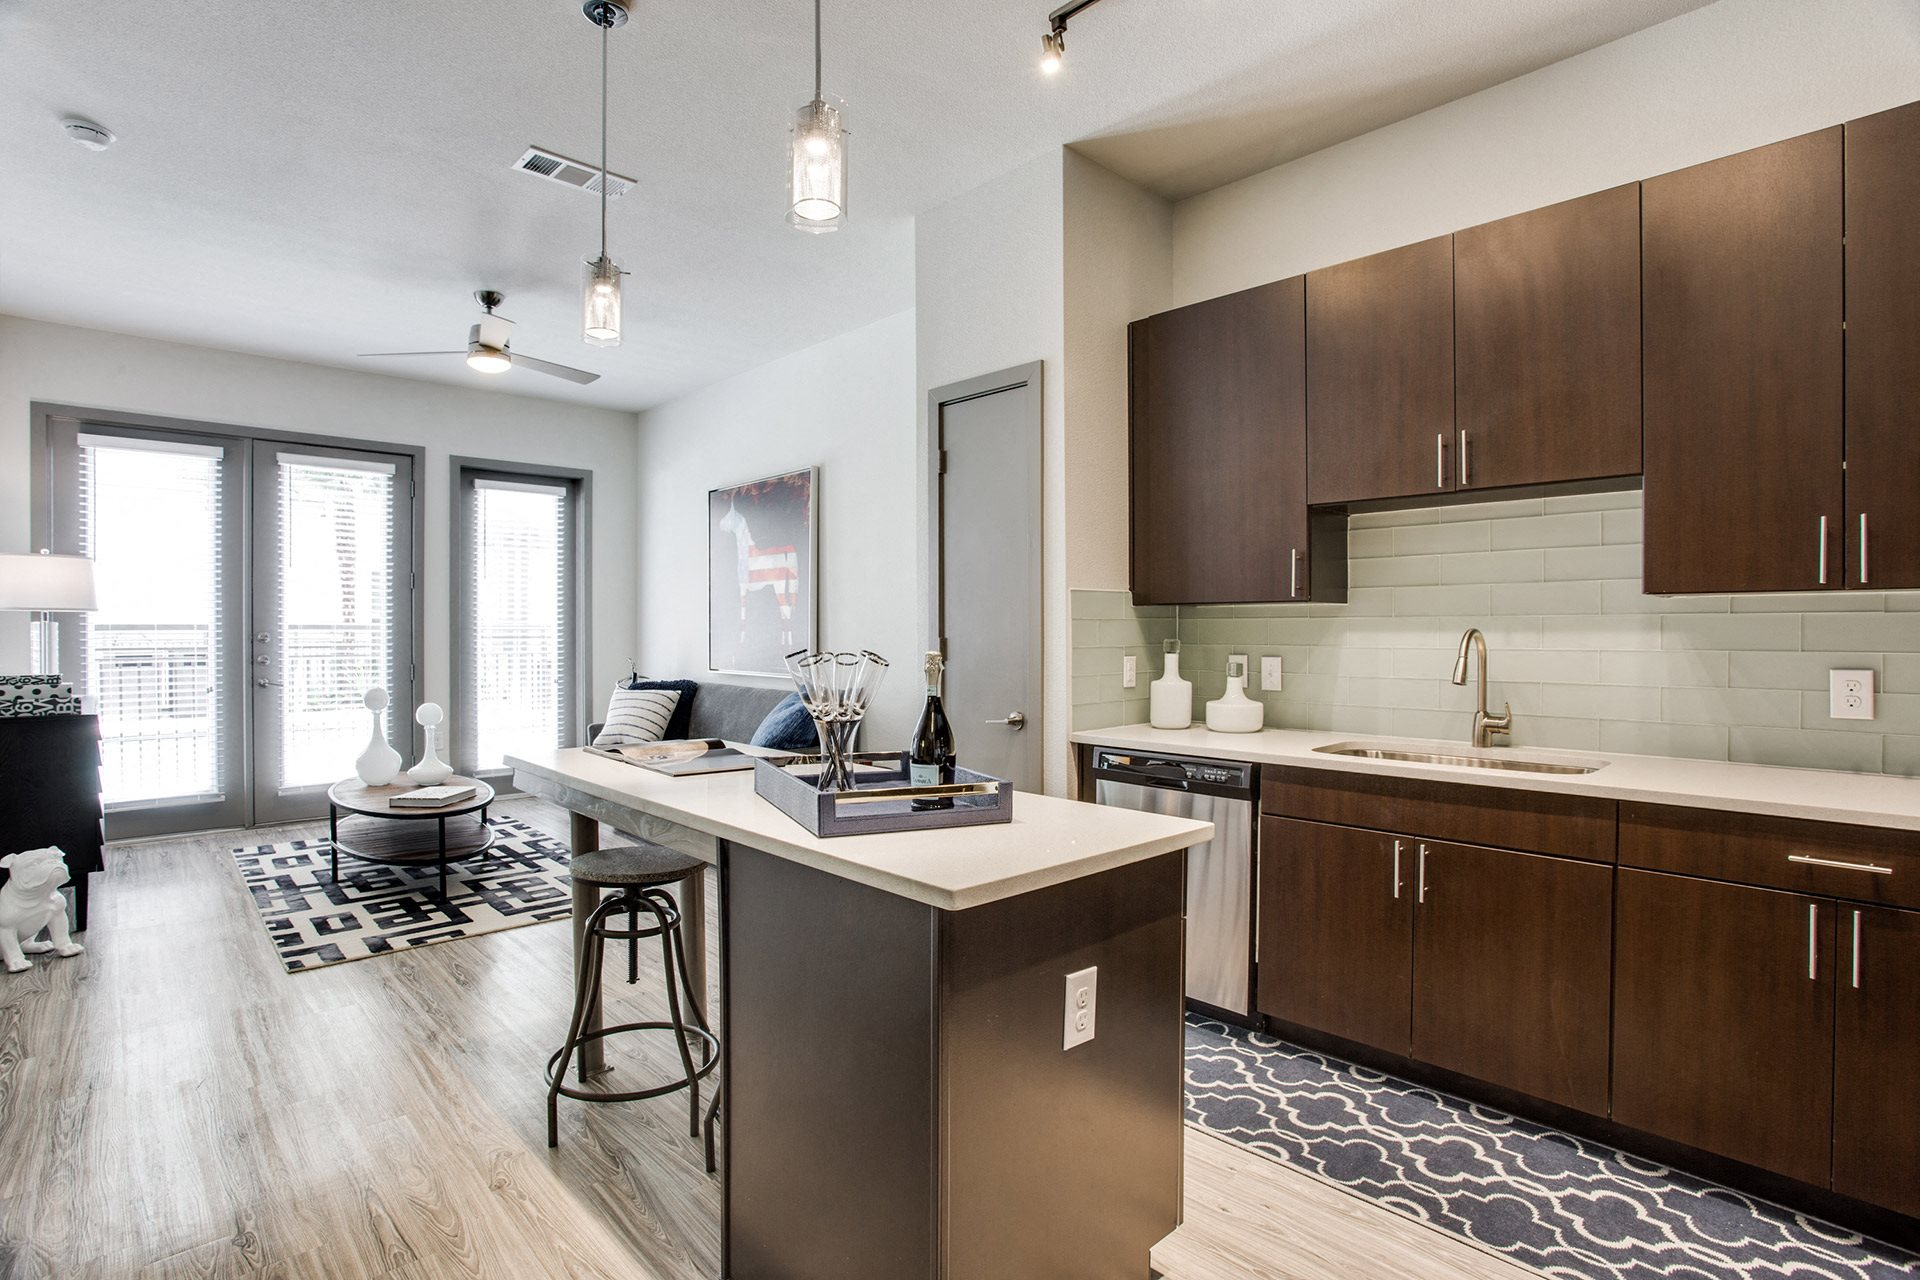 Modern Kitchens with Quartz Countertops at Windsor West Lemmon, 3650 Cedarplaza Lane, Dallas